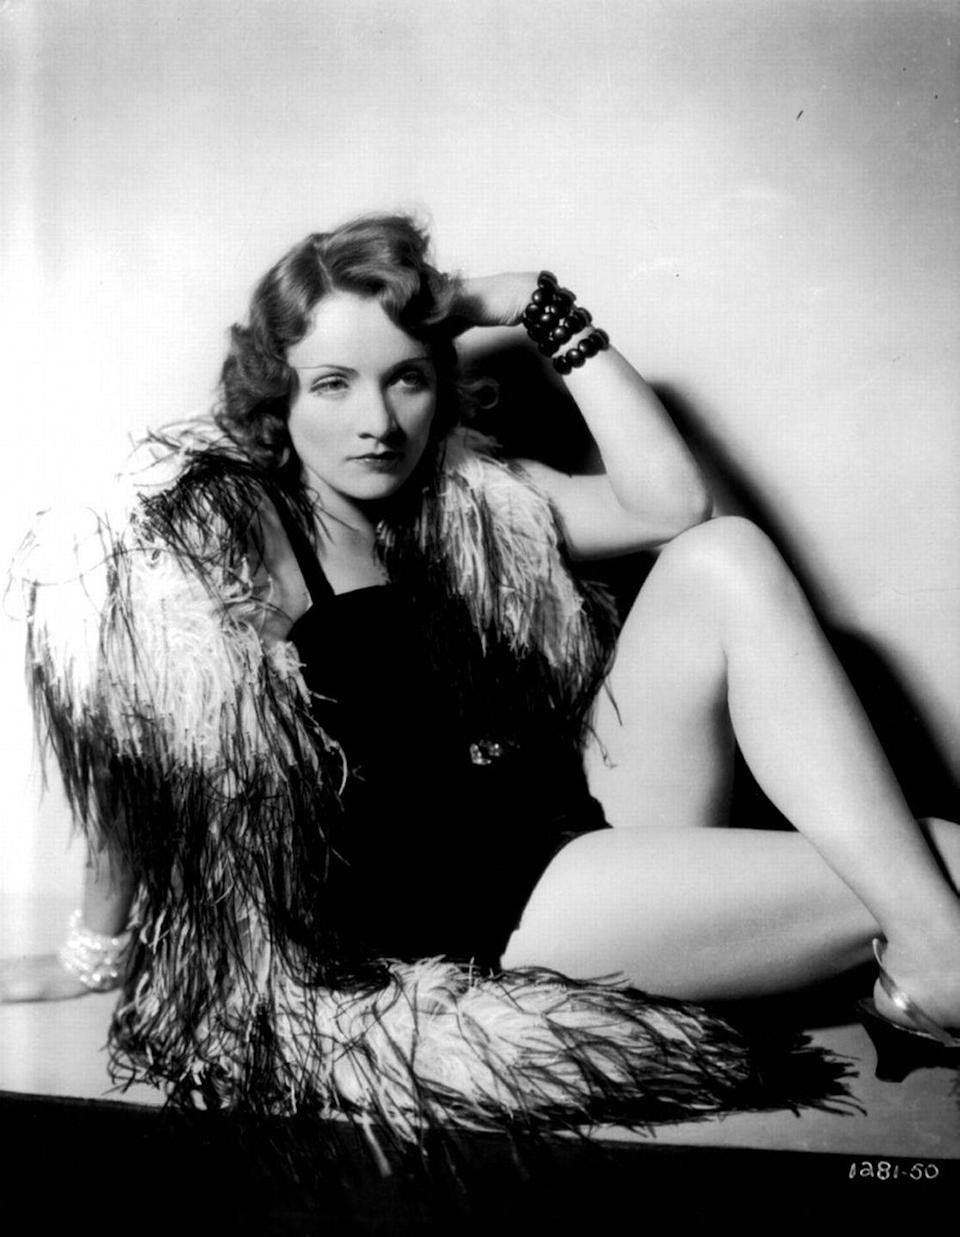 <p>Dietrich, the German-born actress, poses in a scene while filming <em>Morocco </em>and oozes allurement in a black one-piece and feathered wrap. <br></p>